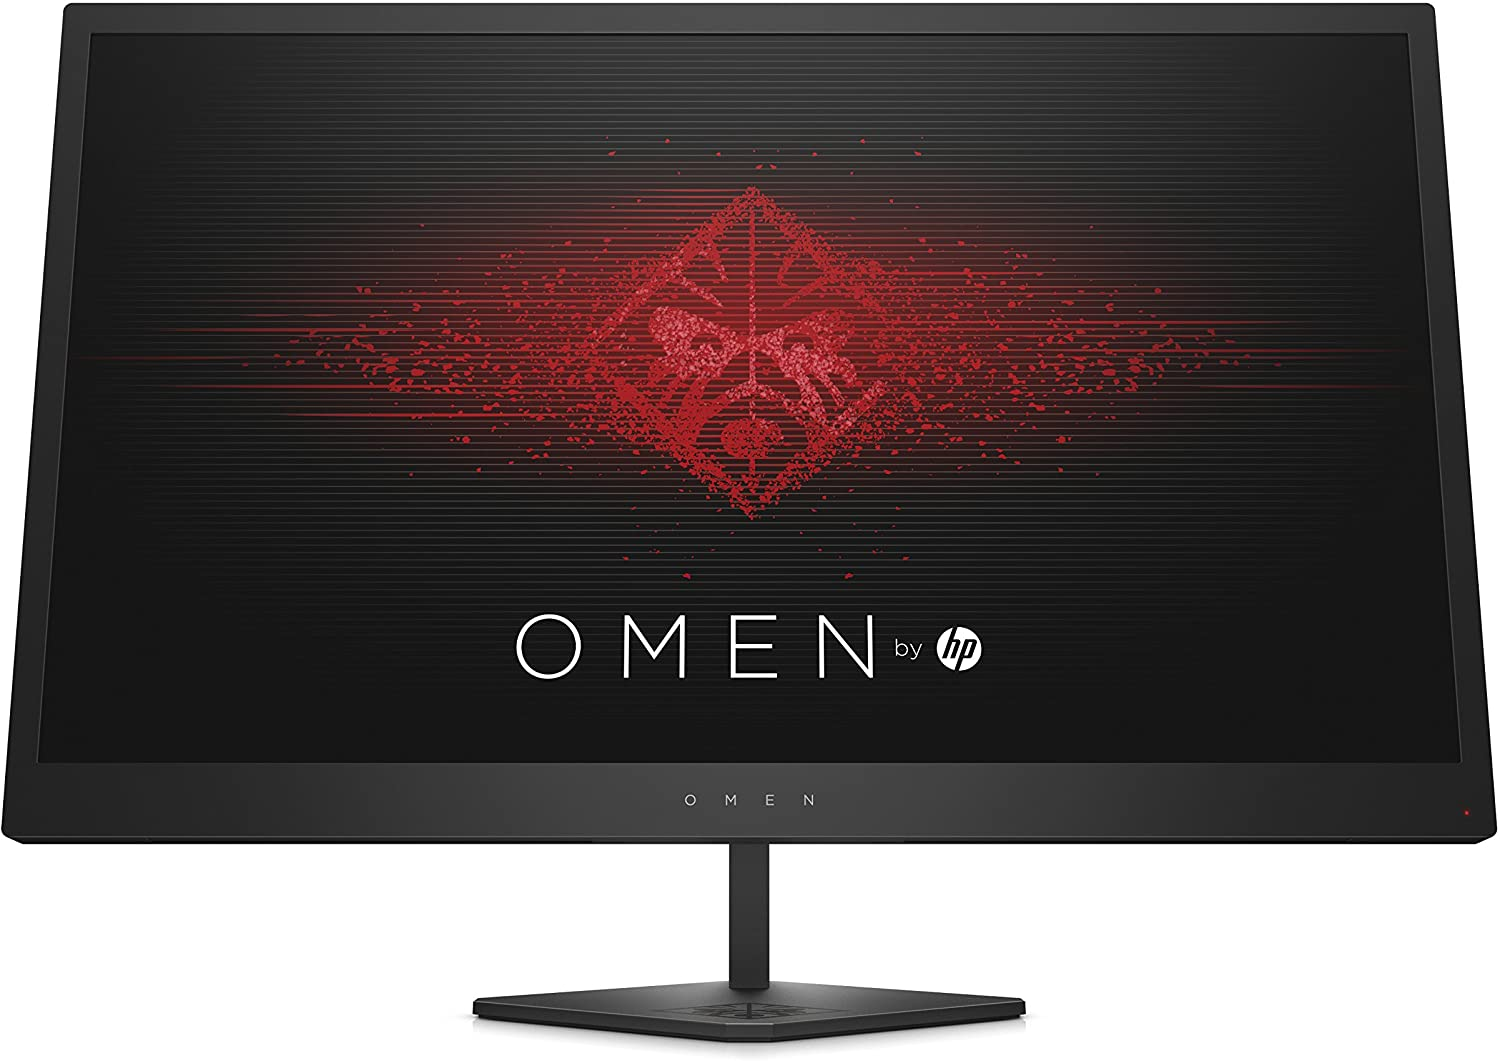 The Best HP Omen 24.5 Monitor Review for 2020